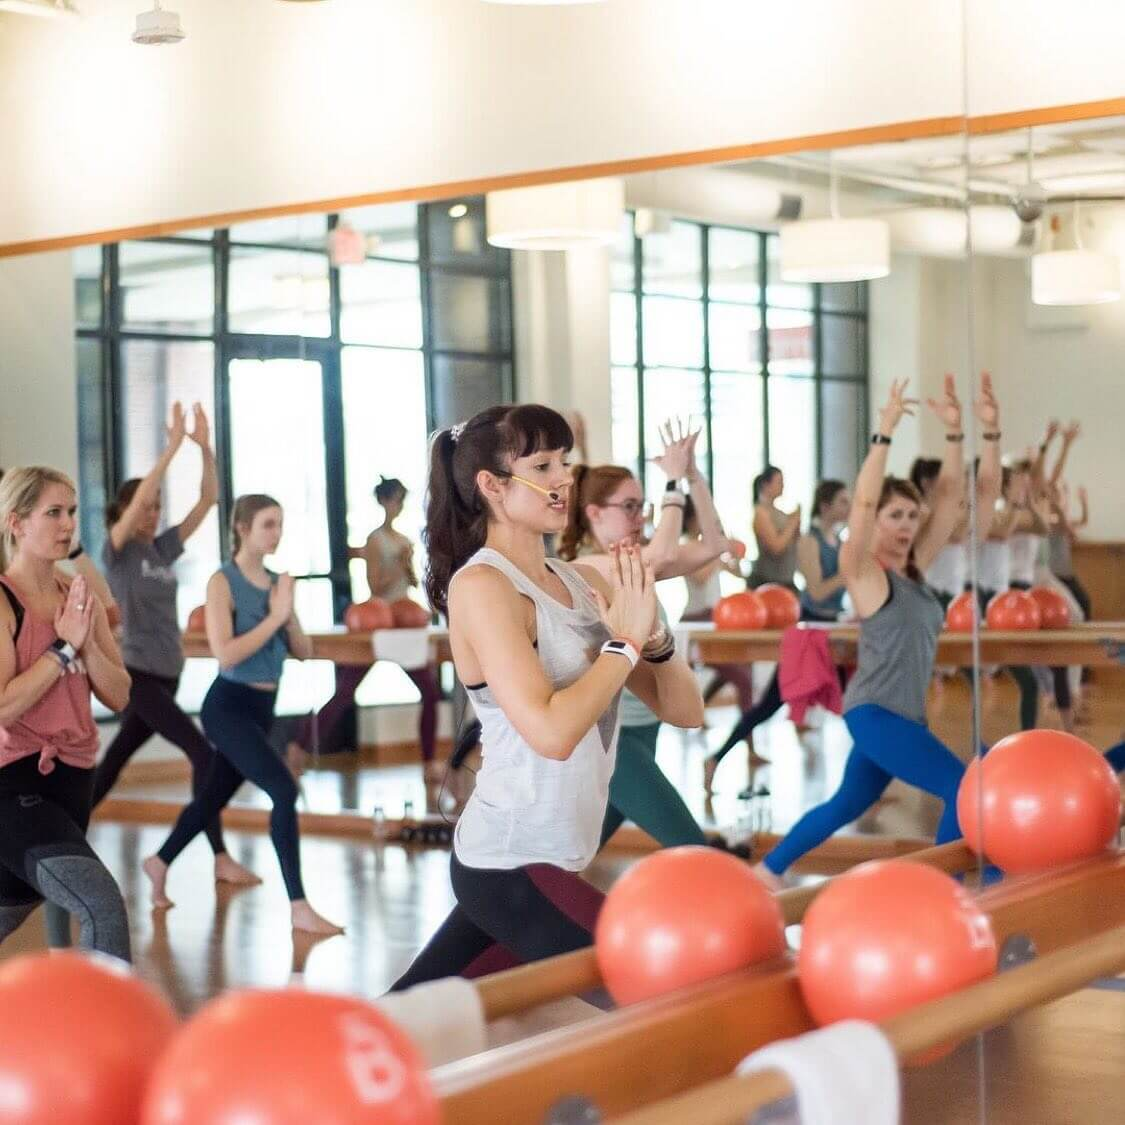 Barre Studios South Florida